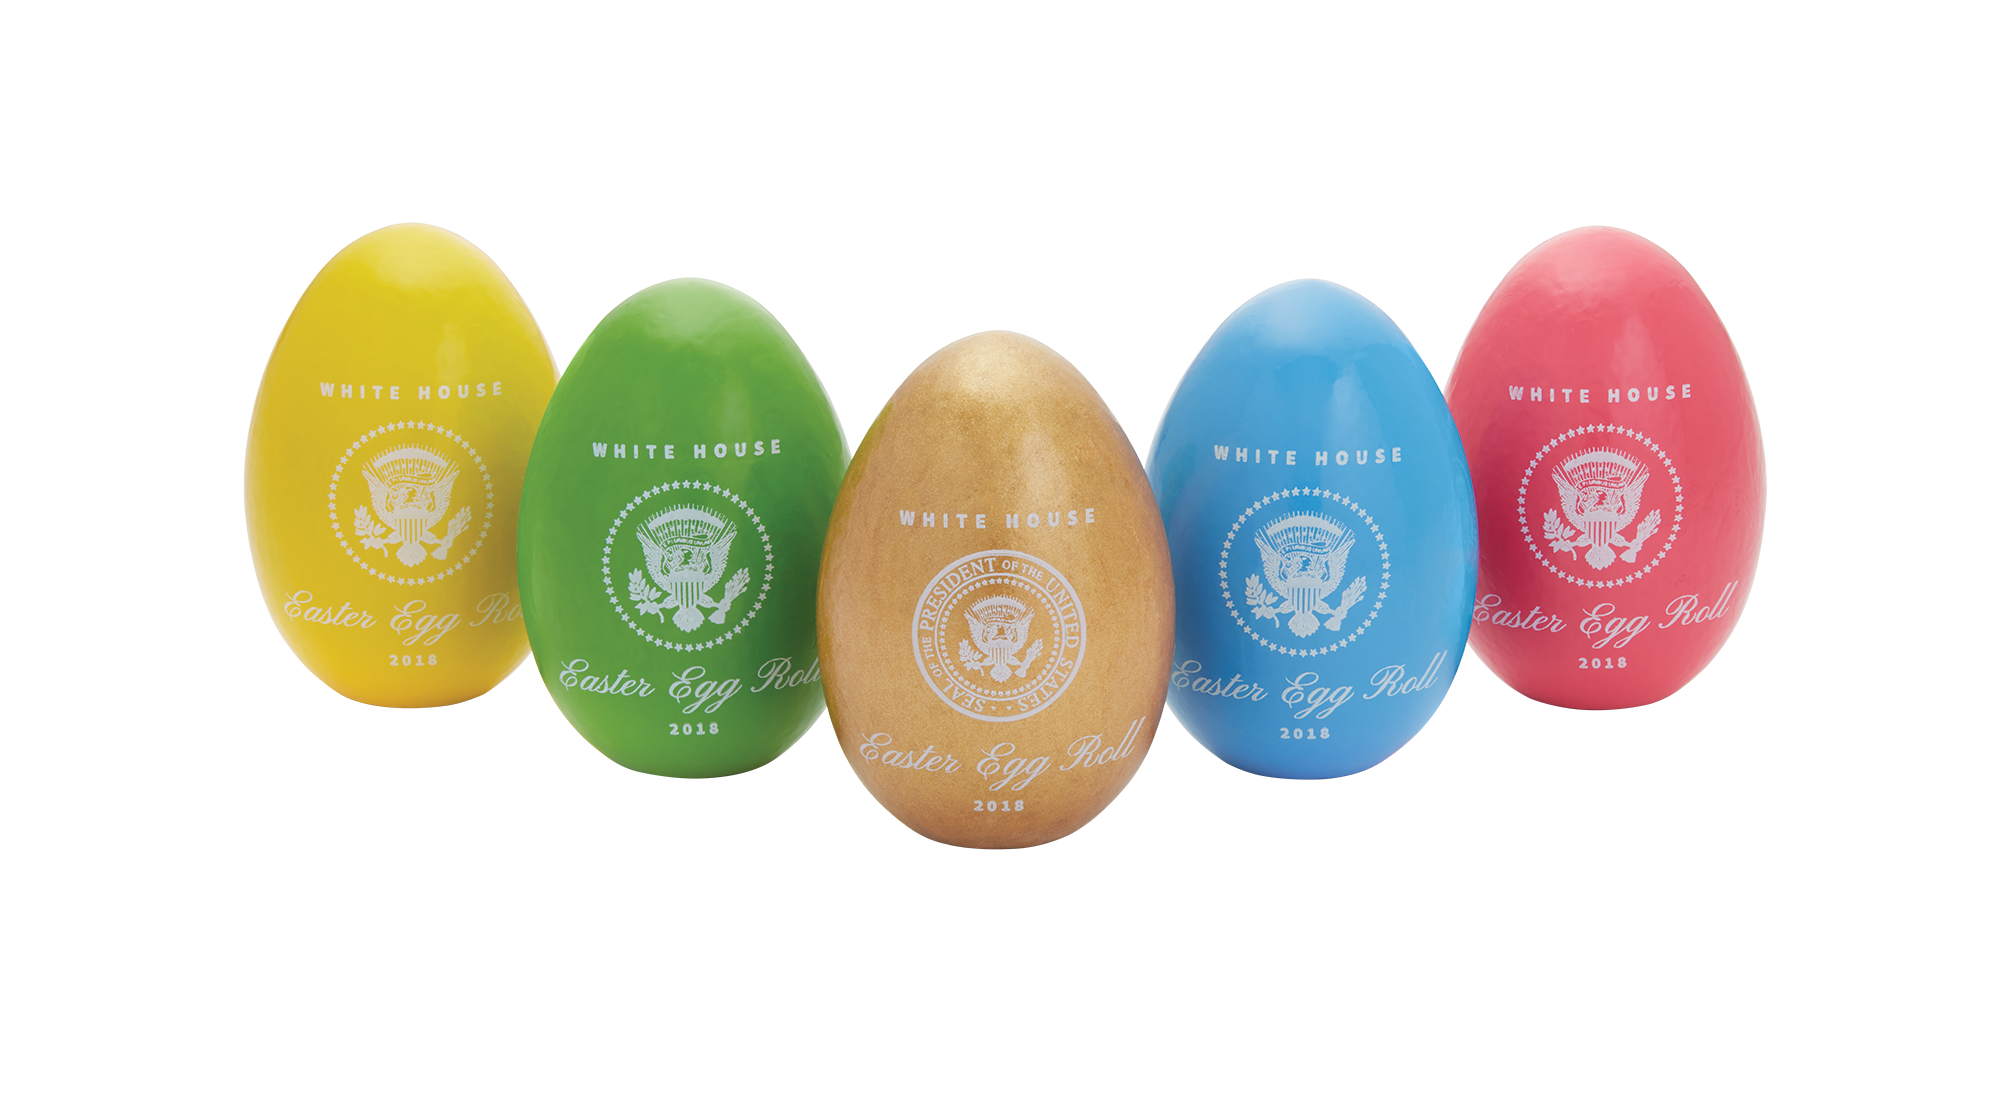 Official 2018 White House Easter Egg Set | The White House ...